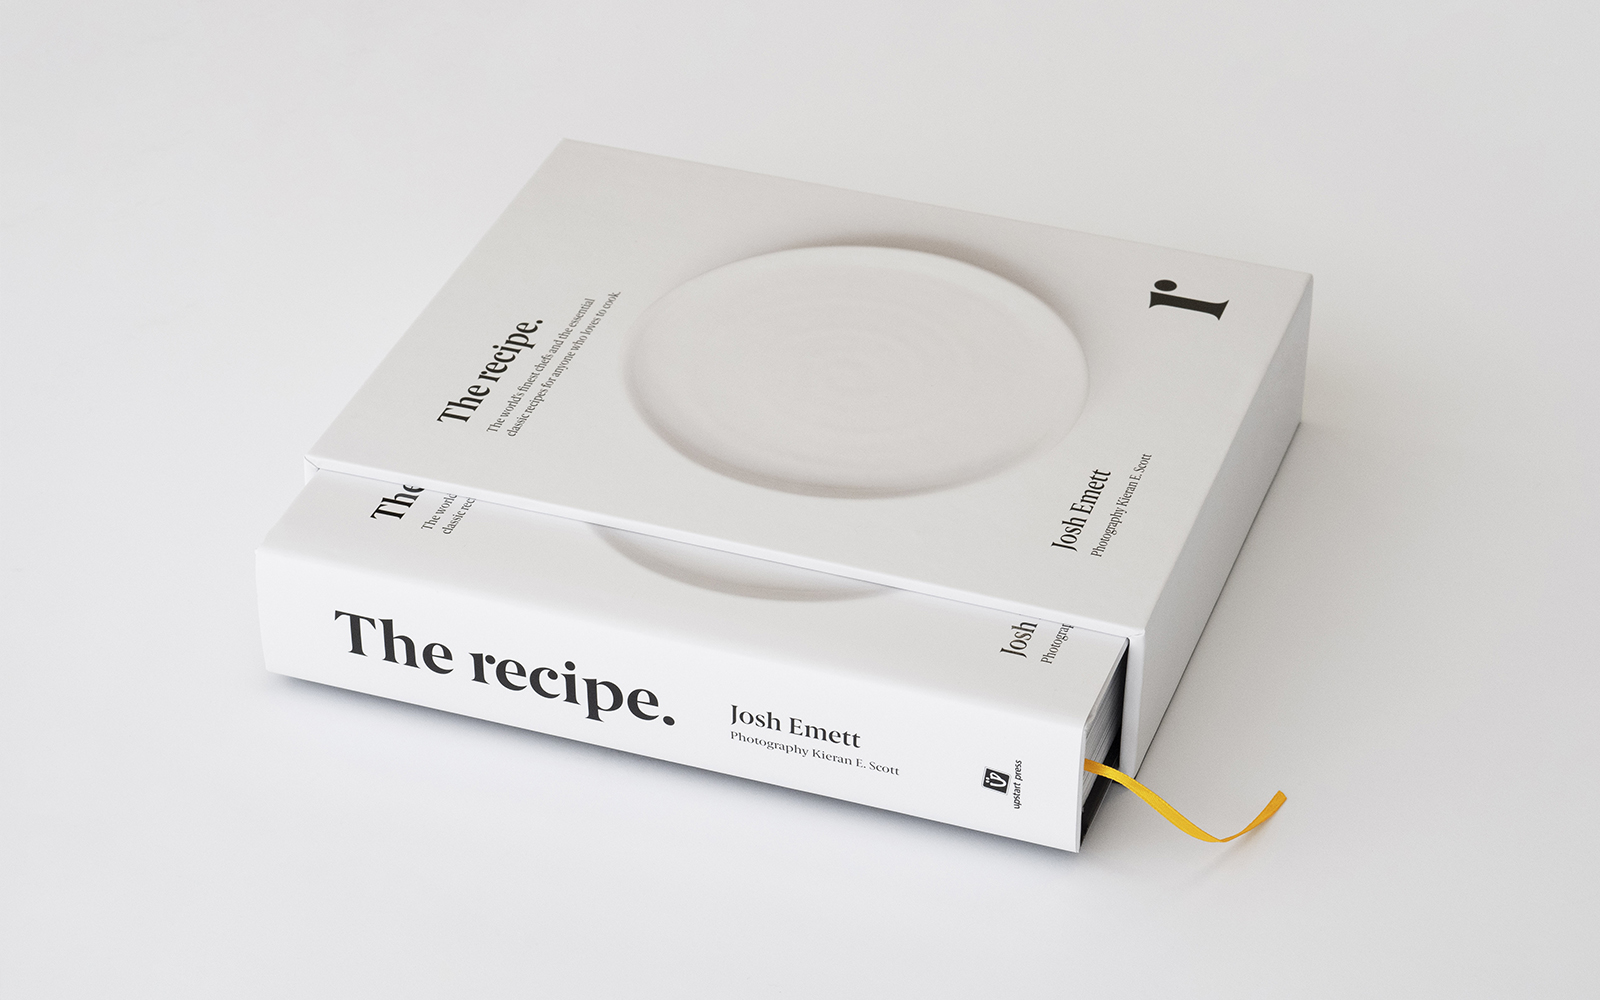 the-recipe-book.jpg